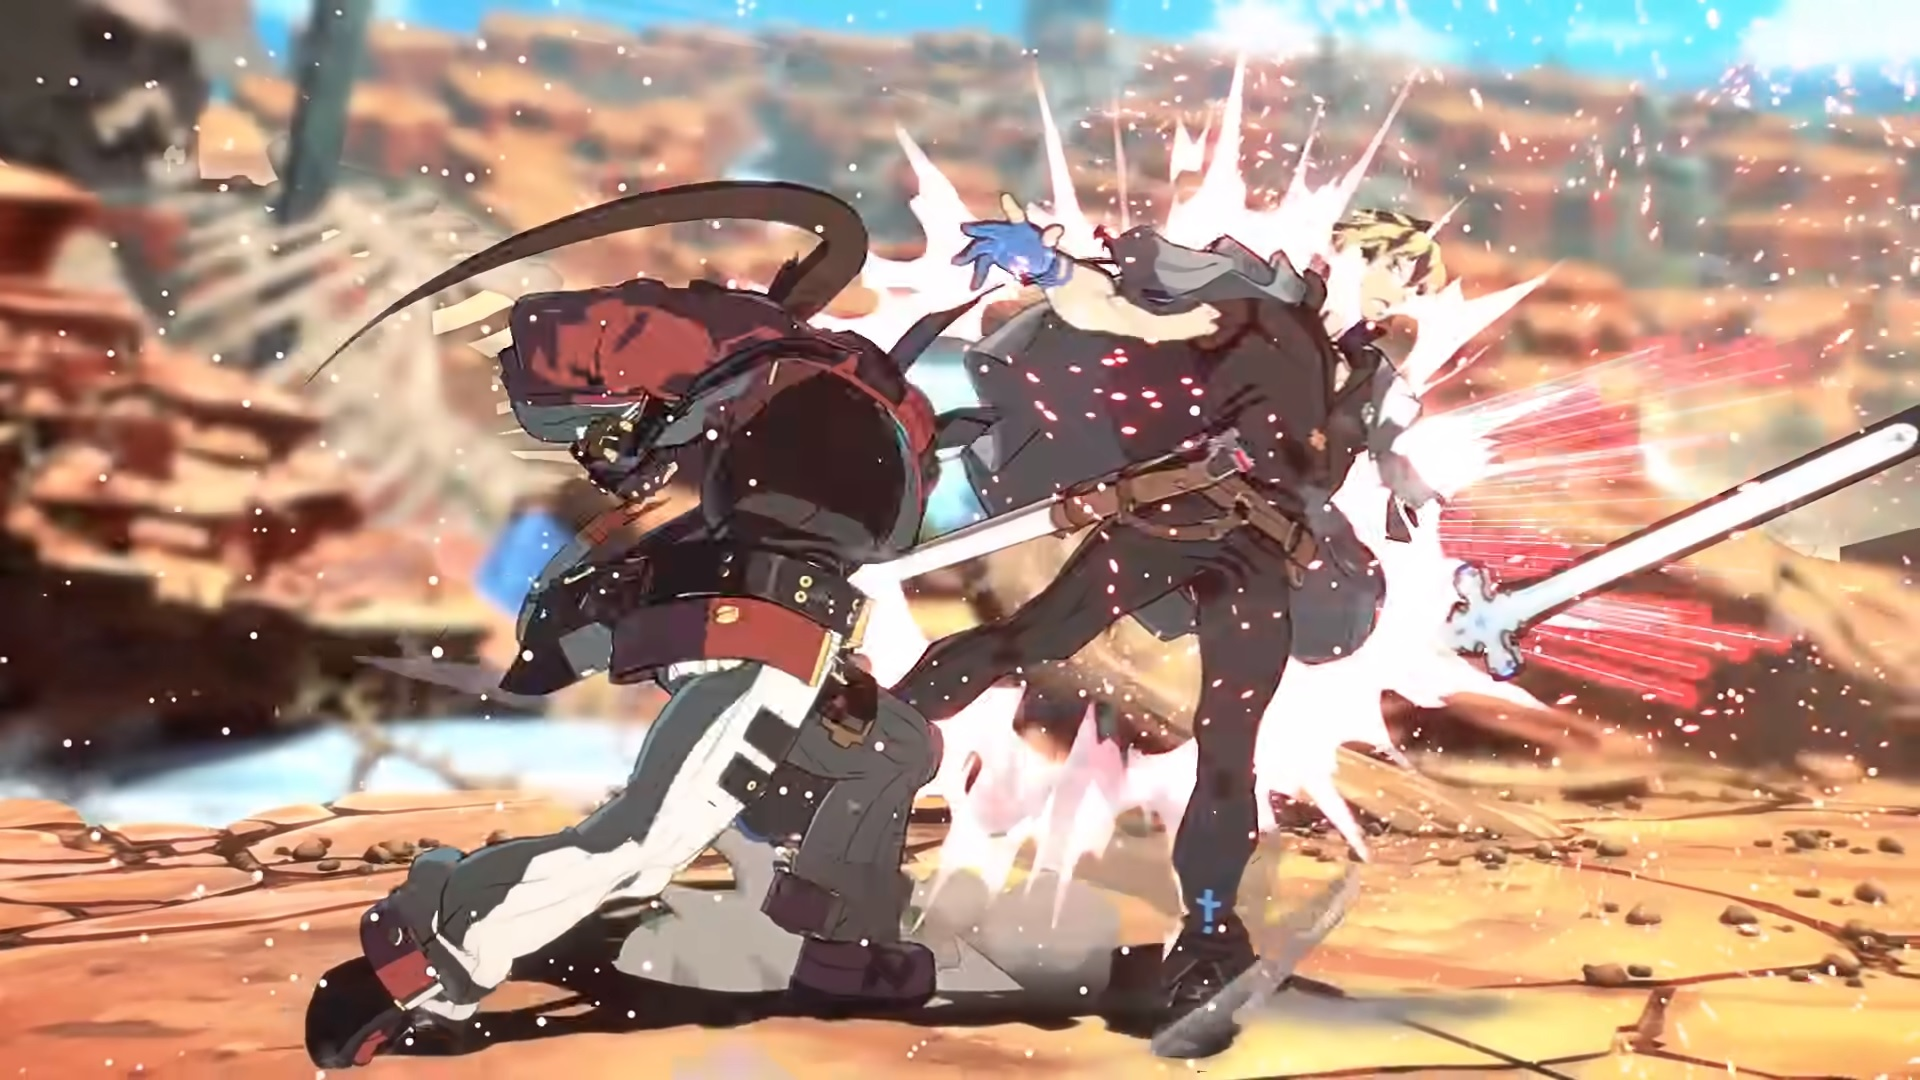 Arc System Works confirms new Guilty Gear -Strive- footage will be shown at New Game+ Expo